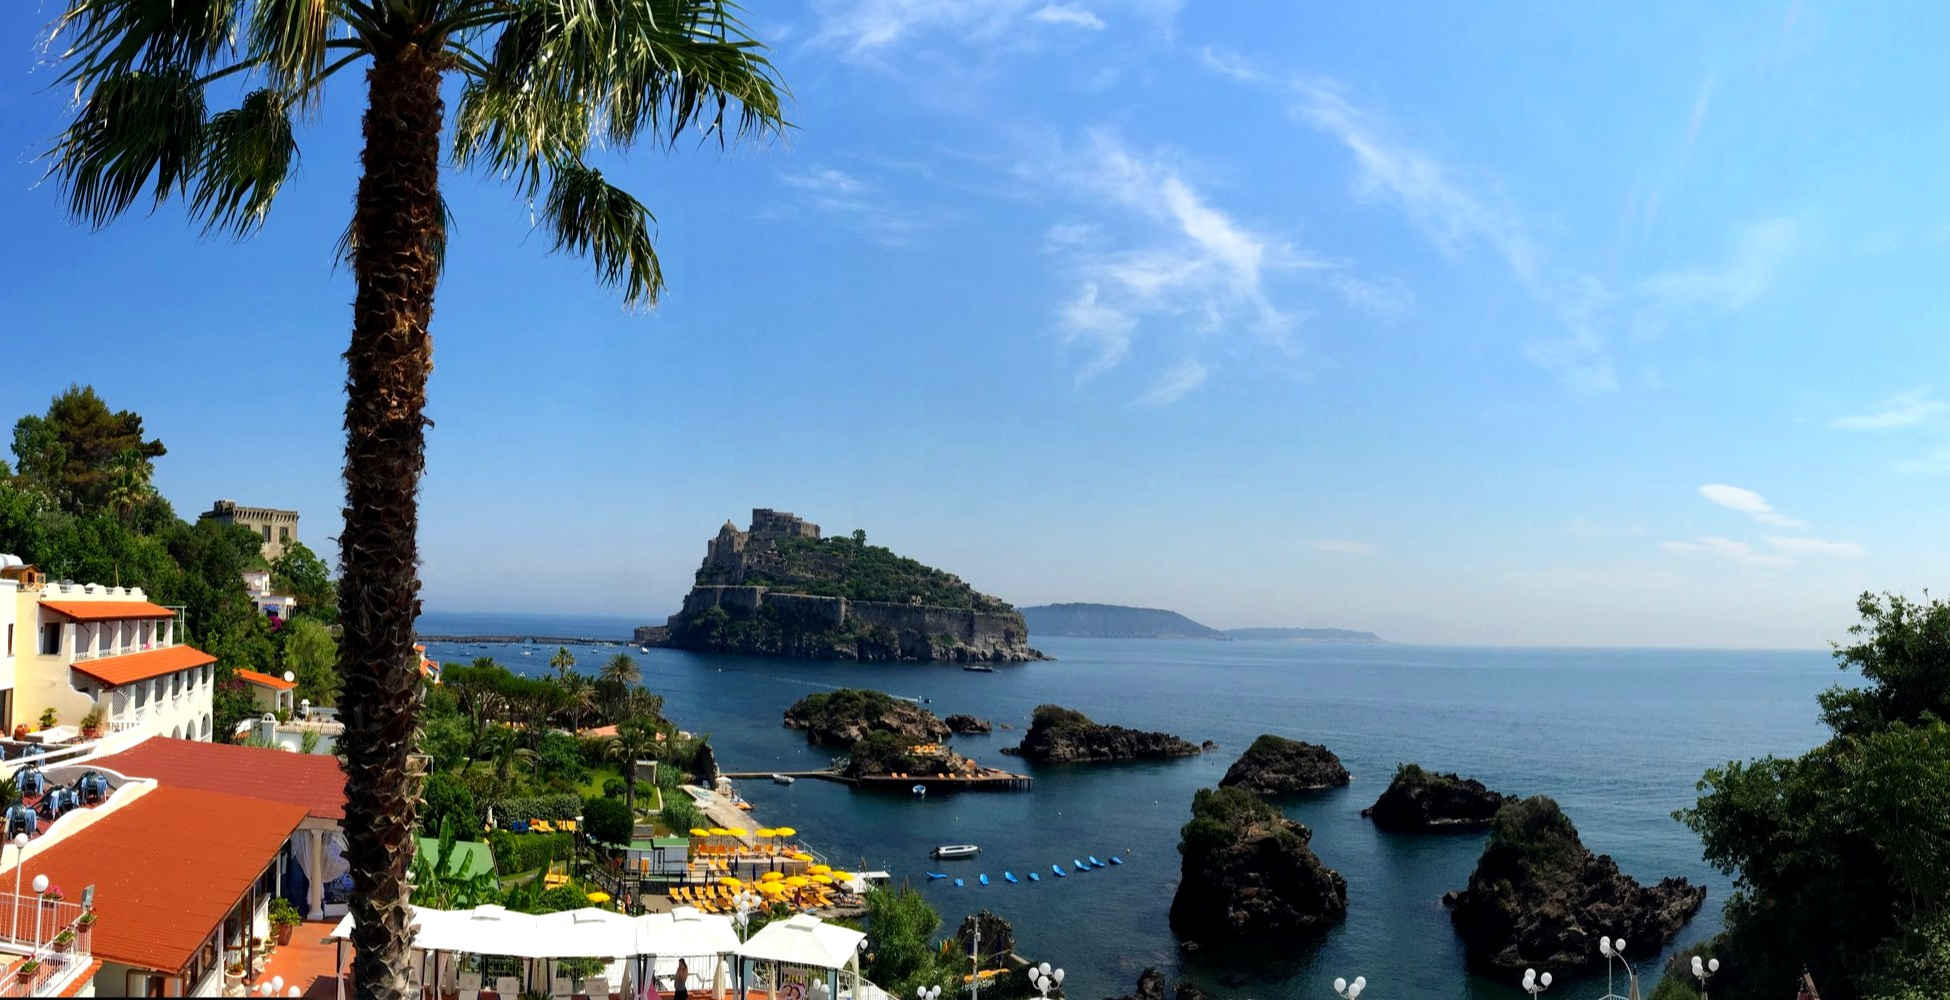 The Aragonese Castle and Procida, from the shores of the Island of Ischia